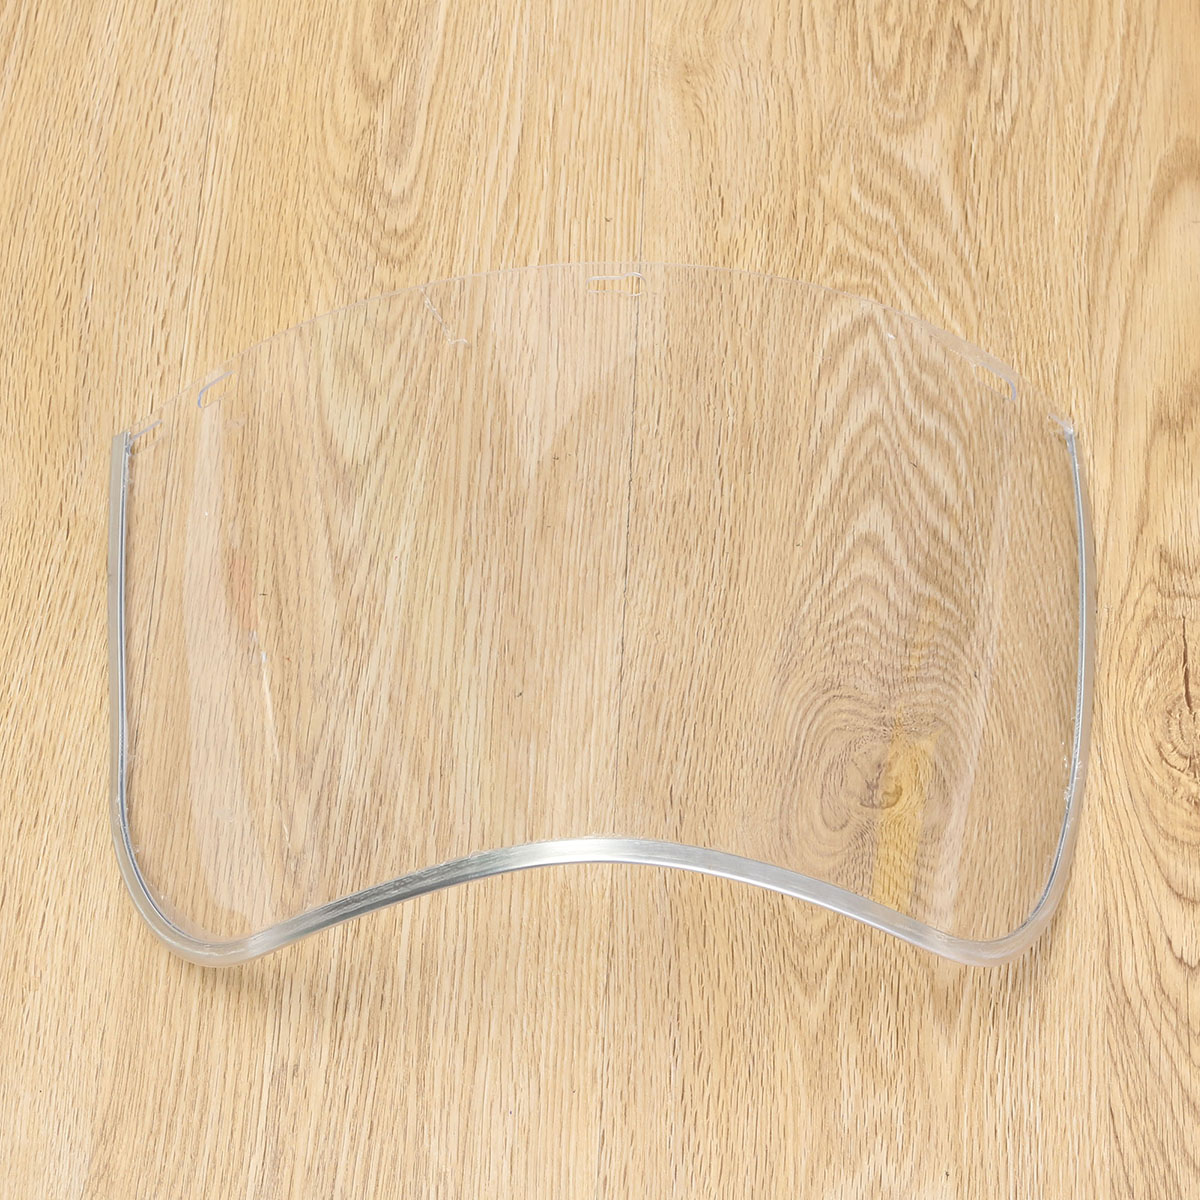 Safety Clear Grinding Face Shield Screen Mask For Spare Visors Eye Protection